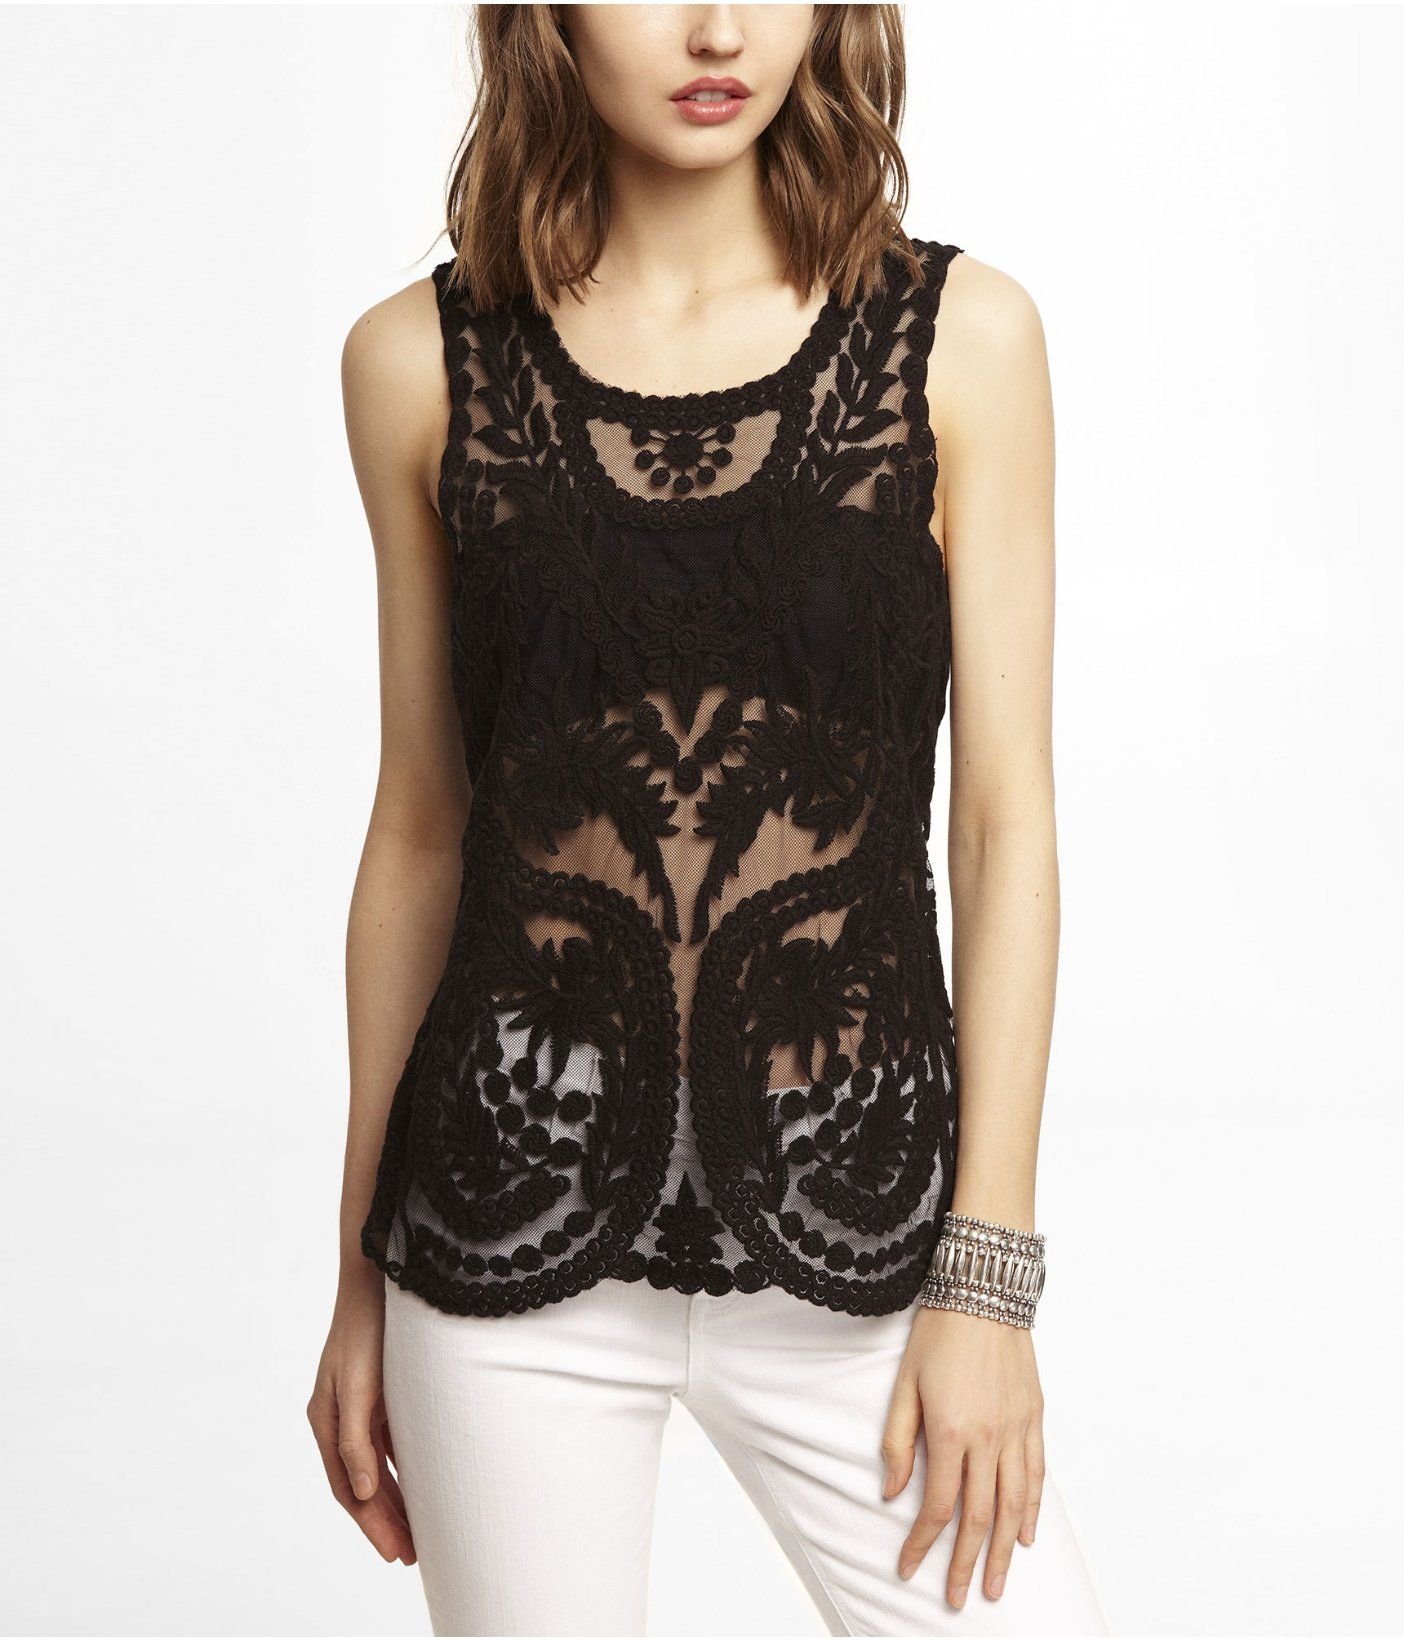 82c80dc14c7fc Express Baroque-Lace Tank in pitch black (pictured)